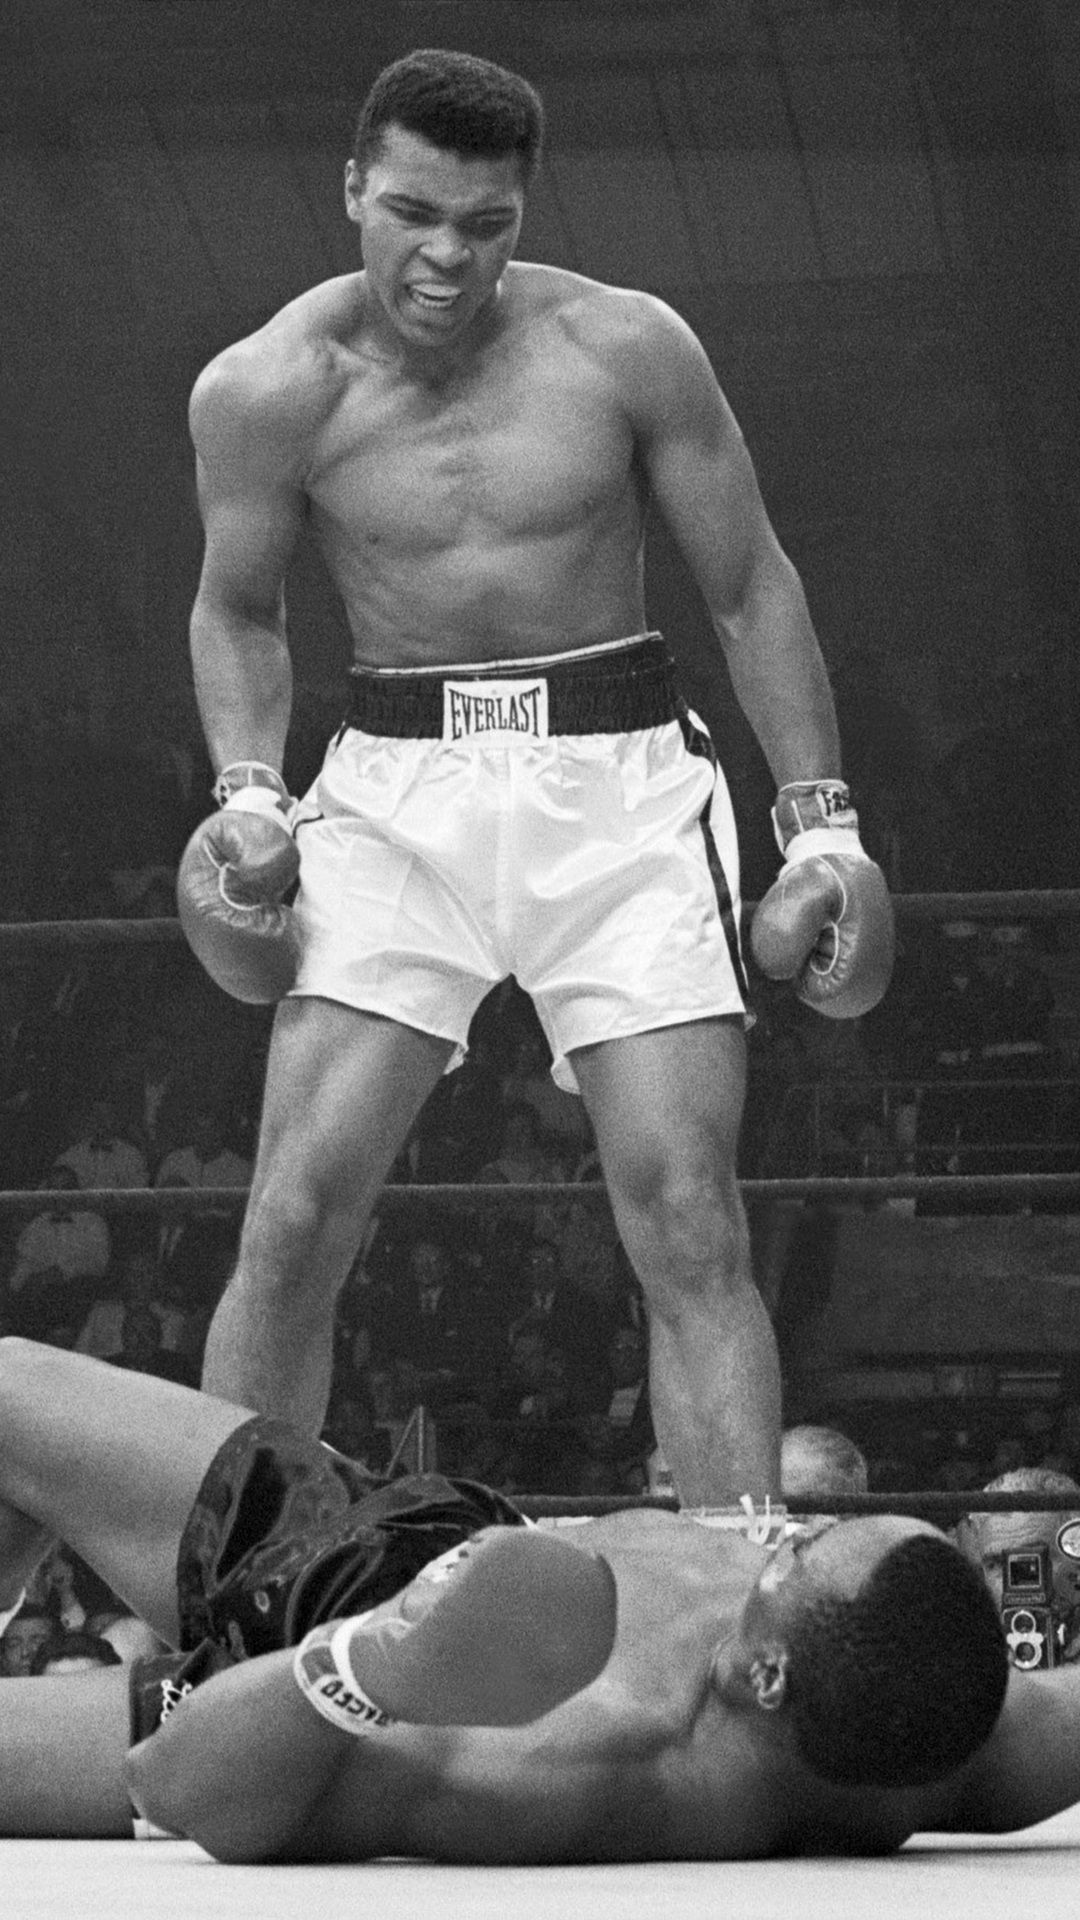 Muhammad Ali Iphone Wallpapers Top Free Muhammad Ali Iphone Backgrounds Wallpaperaccess